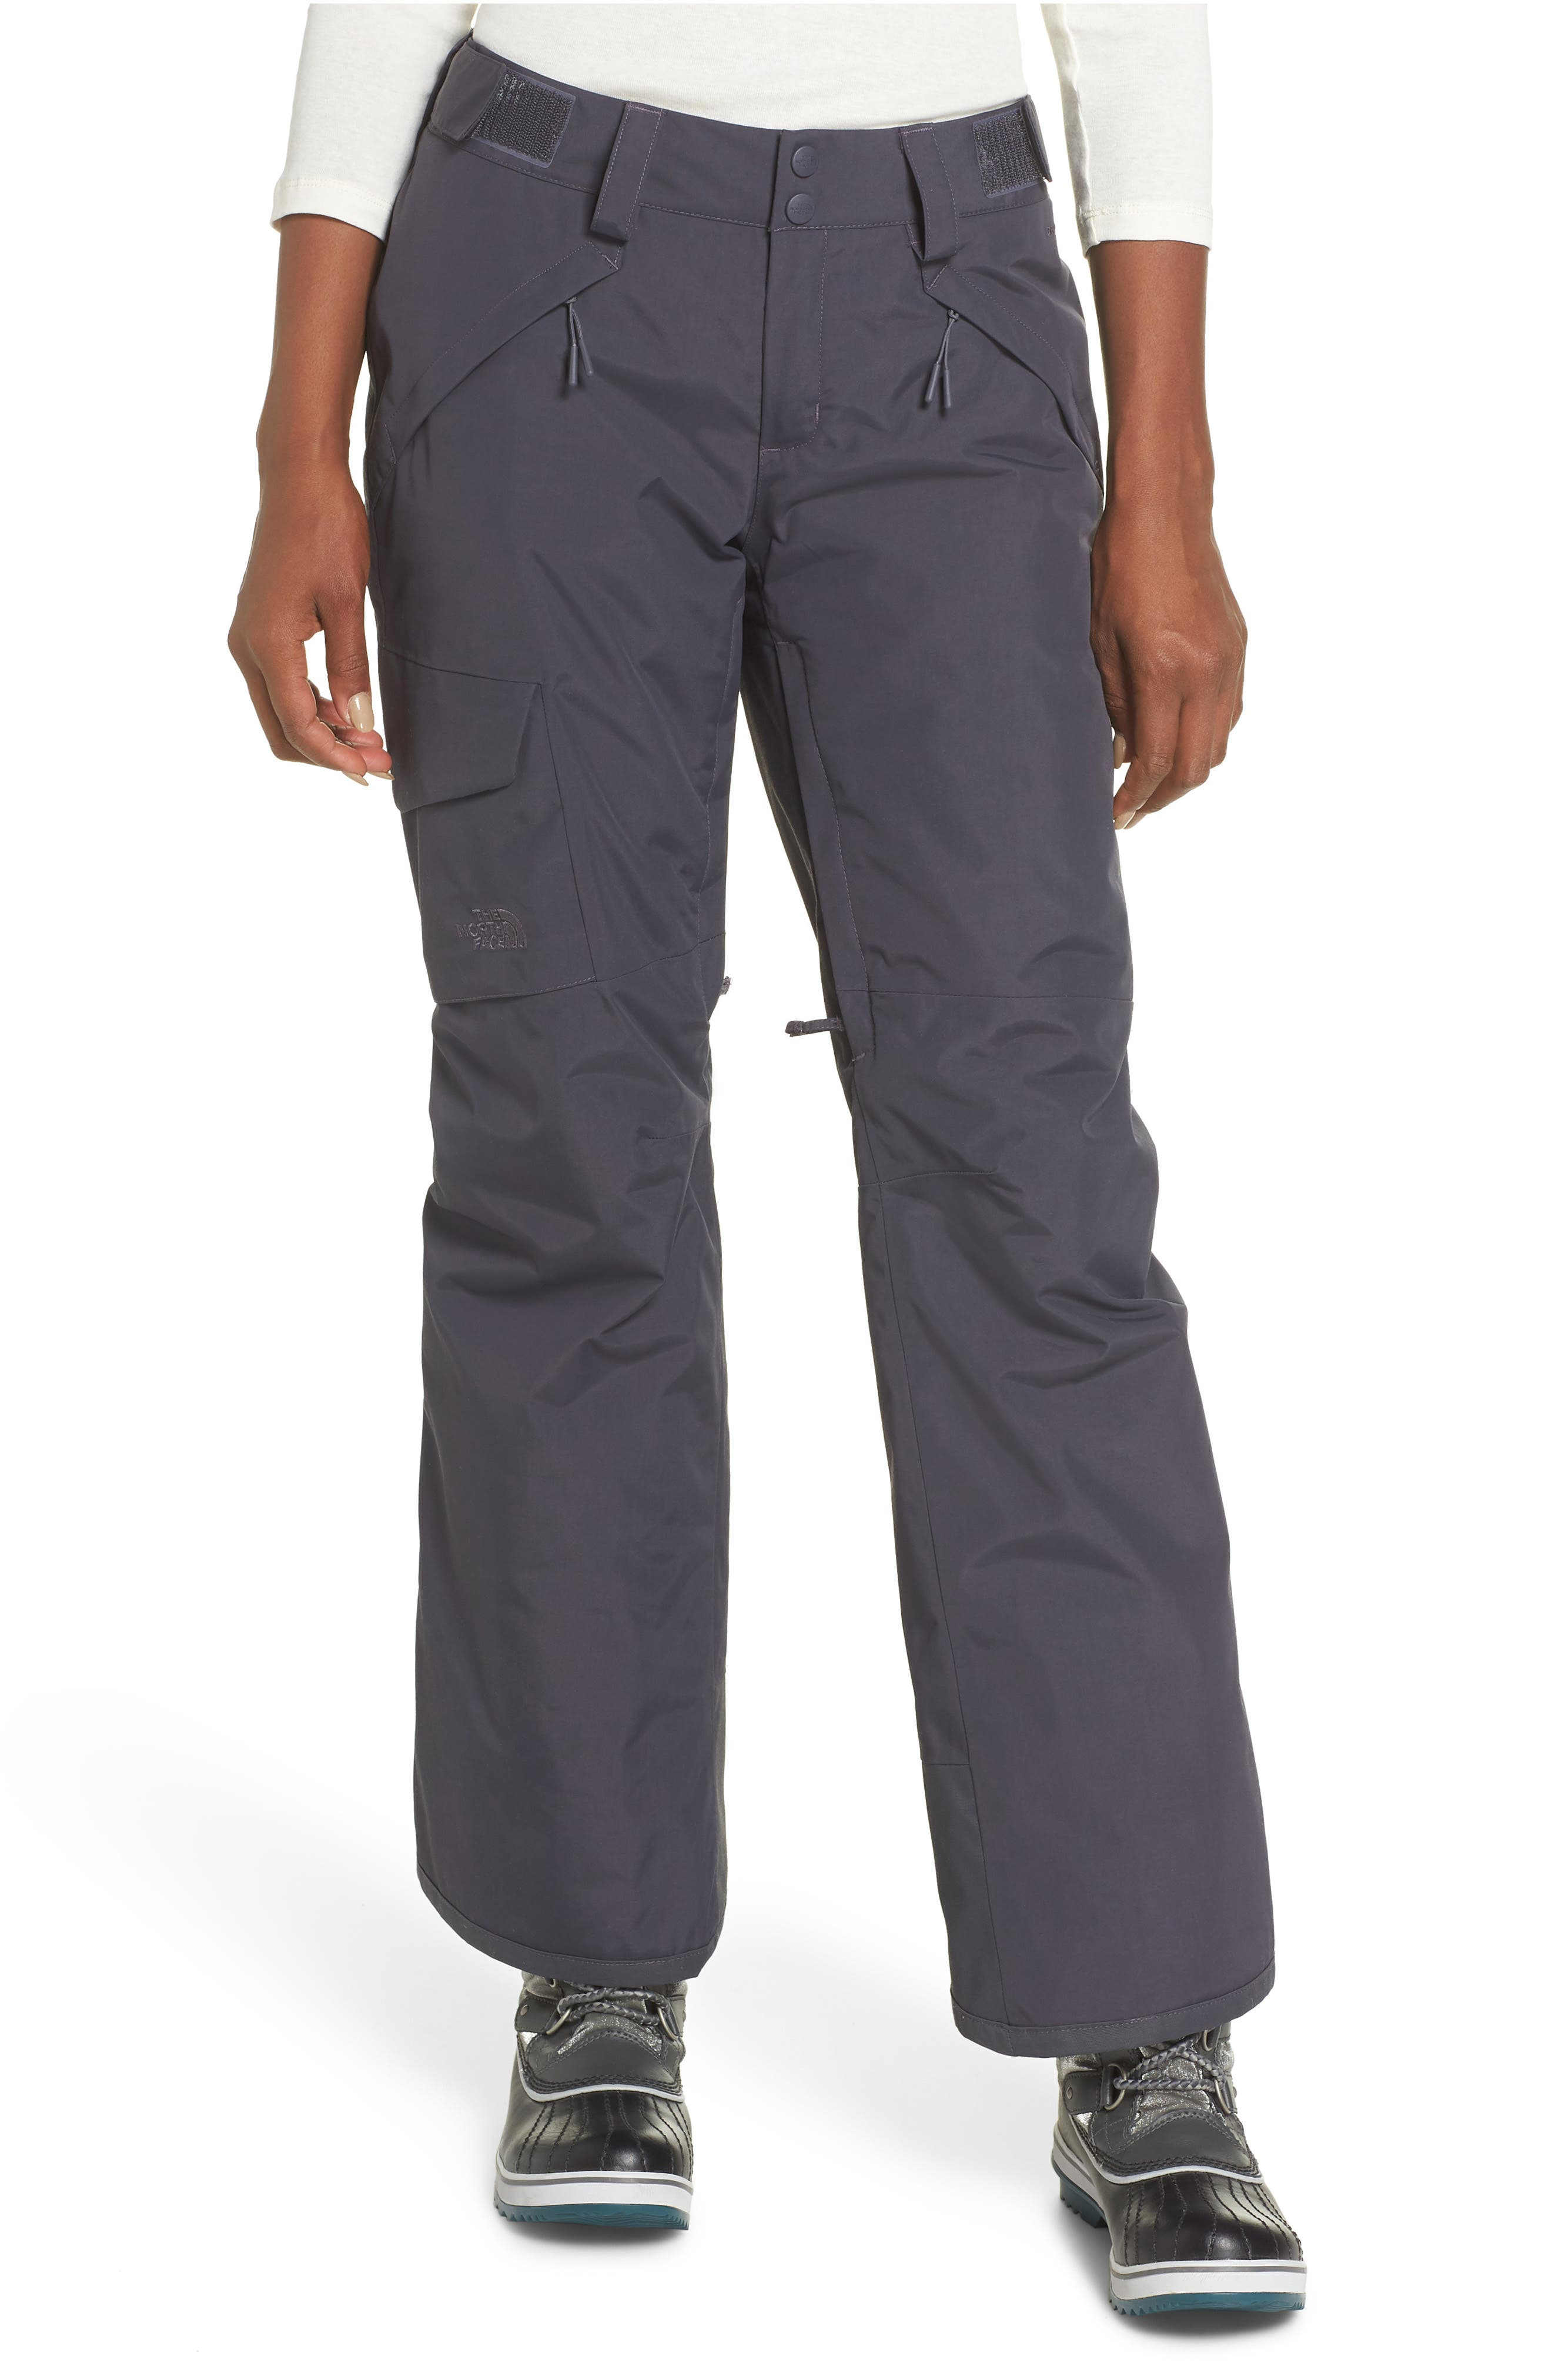 Freedom Waterproof Insulated Pants,                             Main thumbnail 1, color,                             PERISCOPE GREY